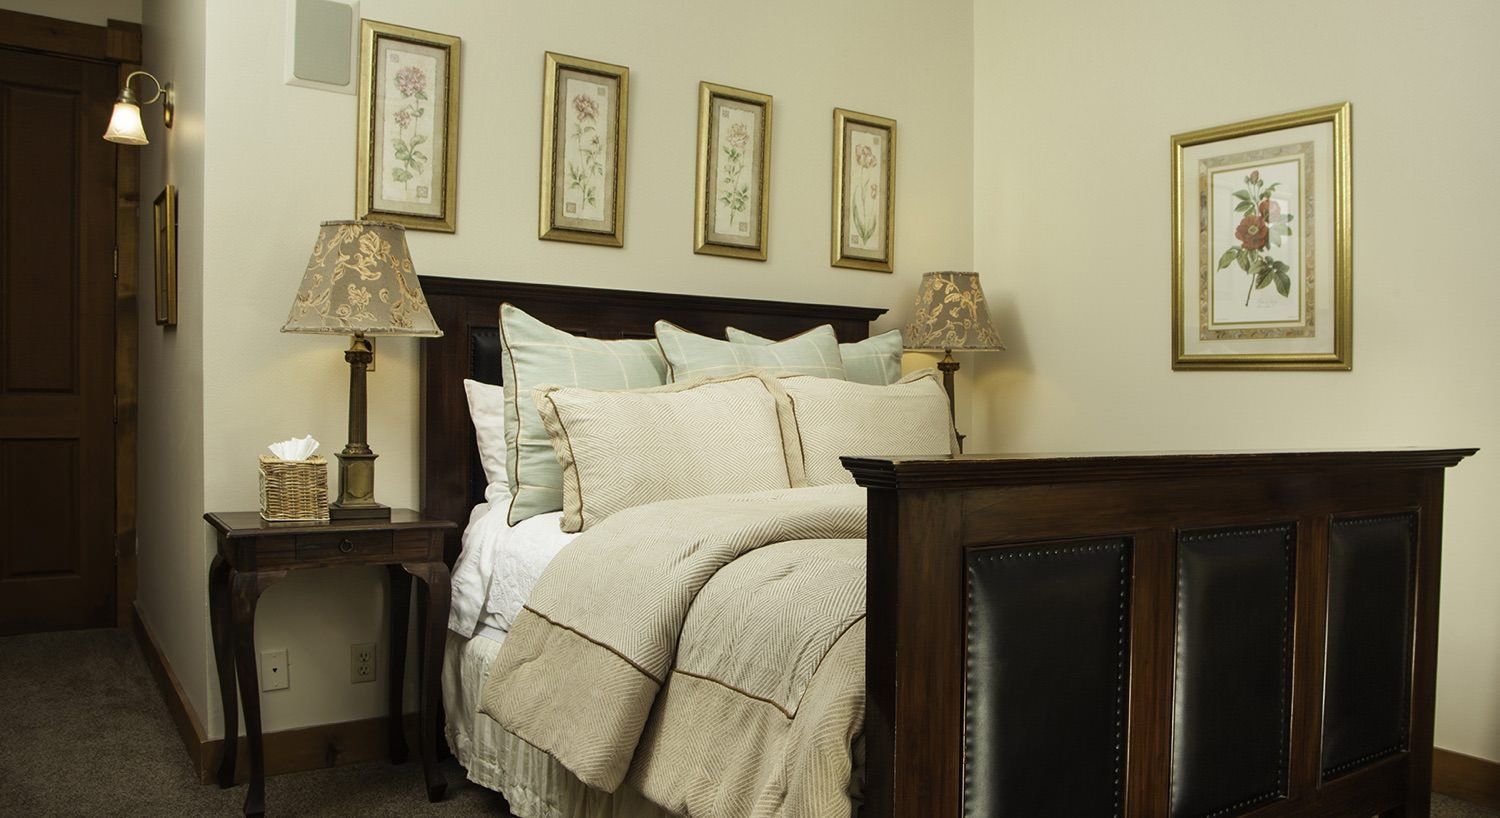 Dark wood and leather bed with ivory comforter, light green and ivory pillows, gold-framed pictures, and nightstands with lamps